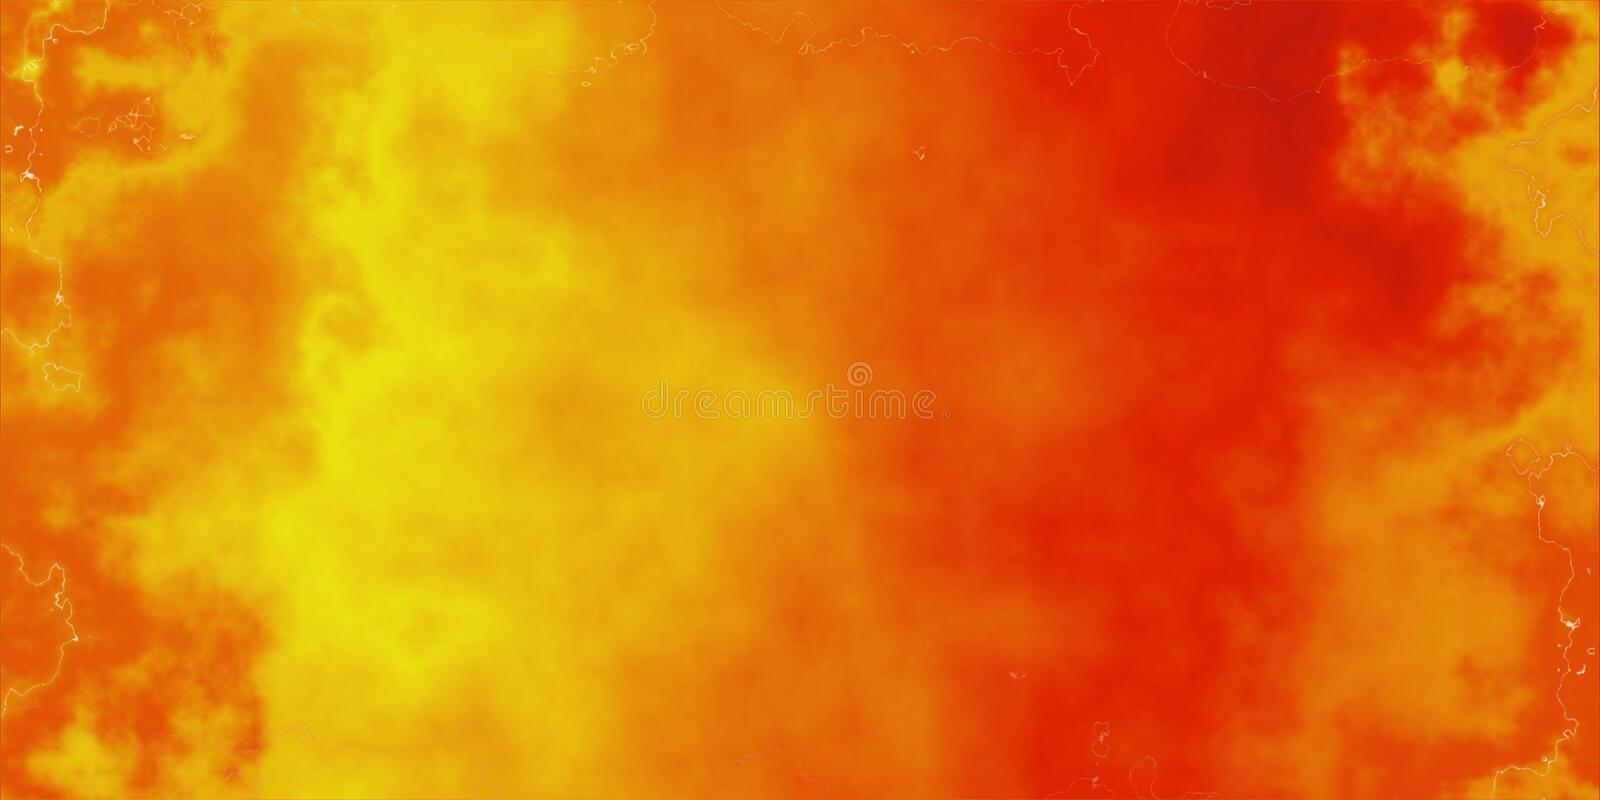 3 947 aesthetic bright photos free royalty free stock photos from dreamstime 3 947 aesthetic bright photos free